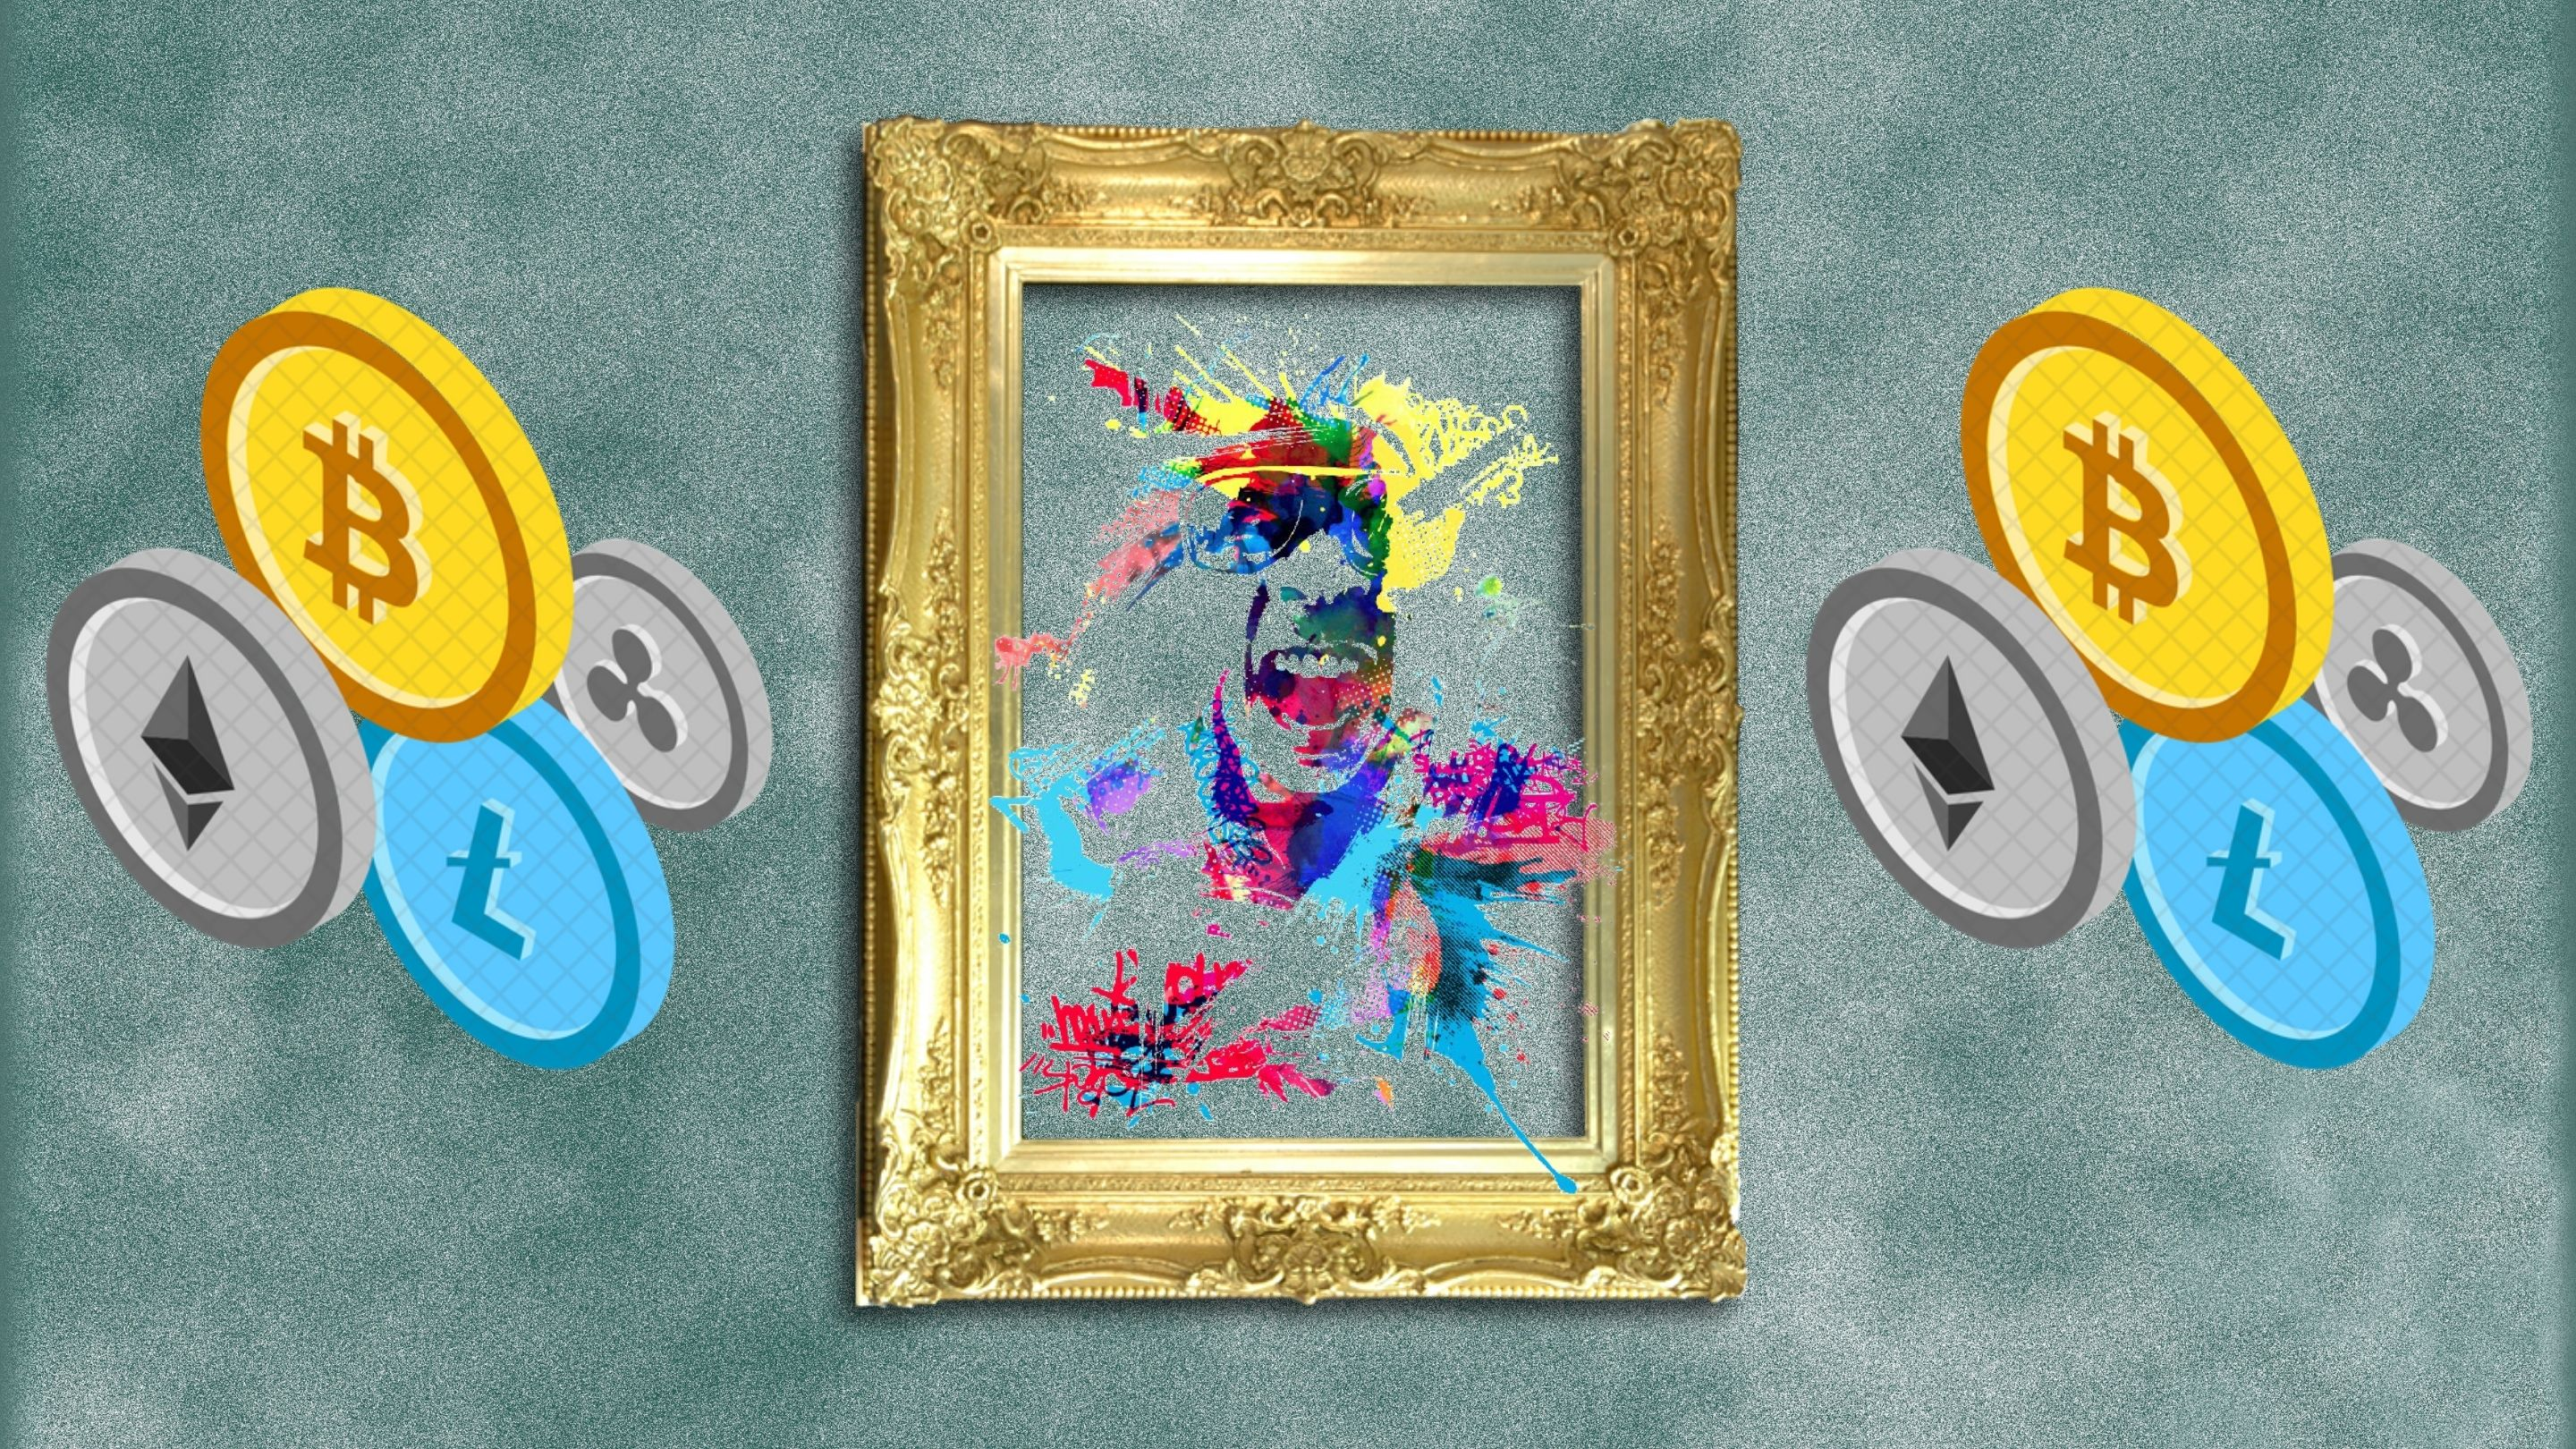 Digital illustration of crypto coins and a golden frame with a colorful face